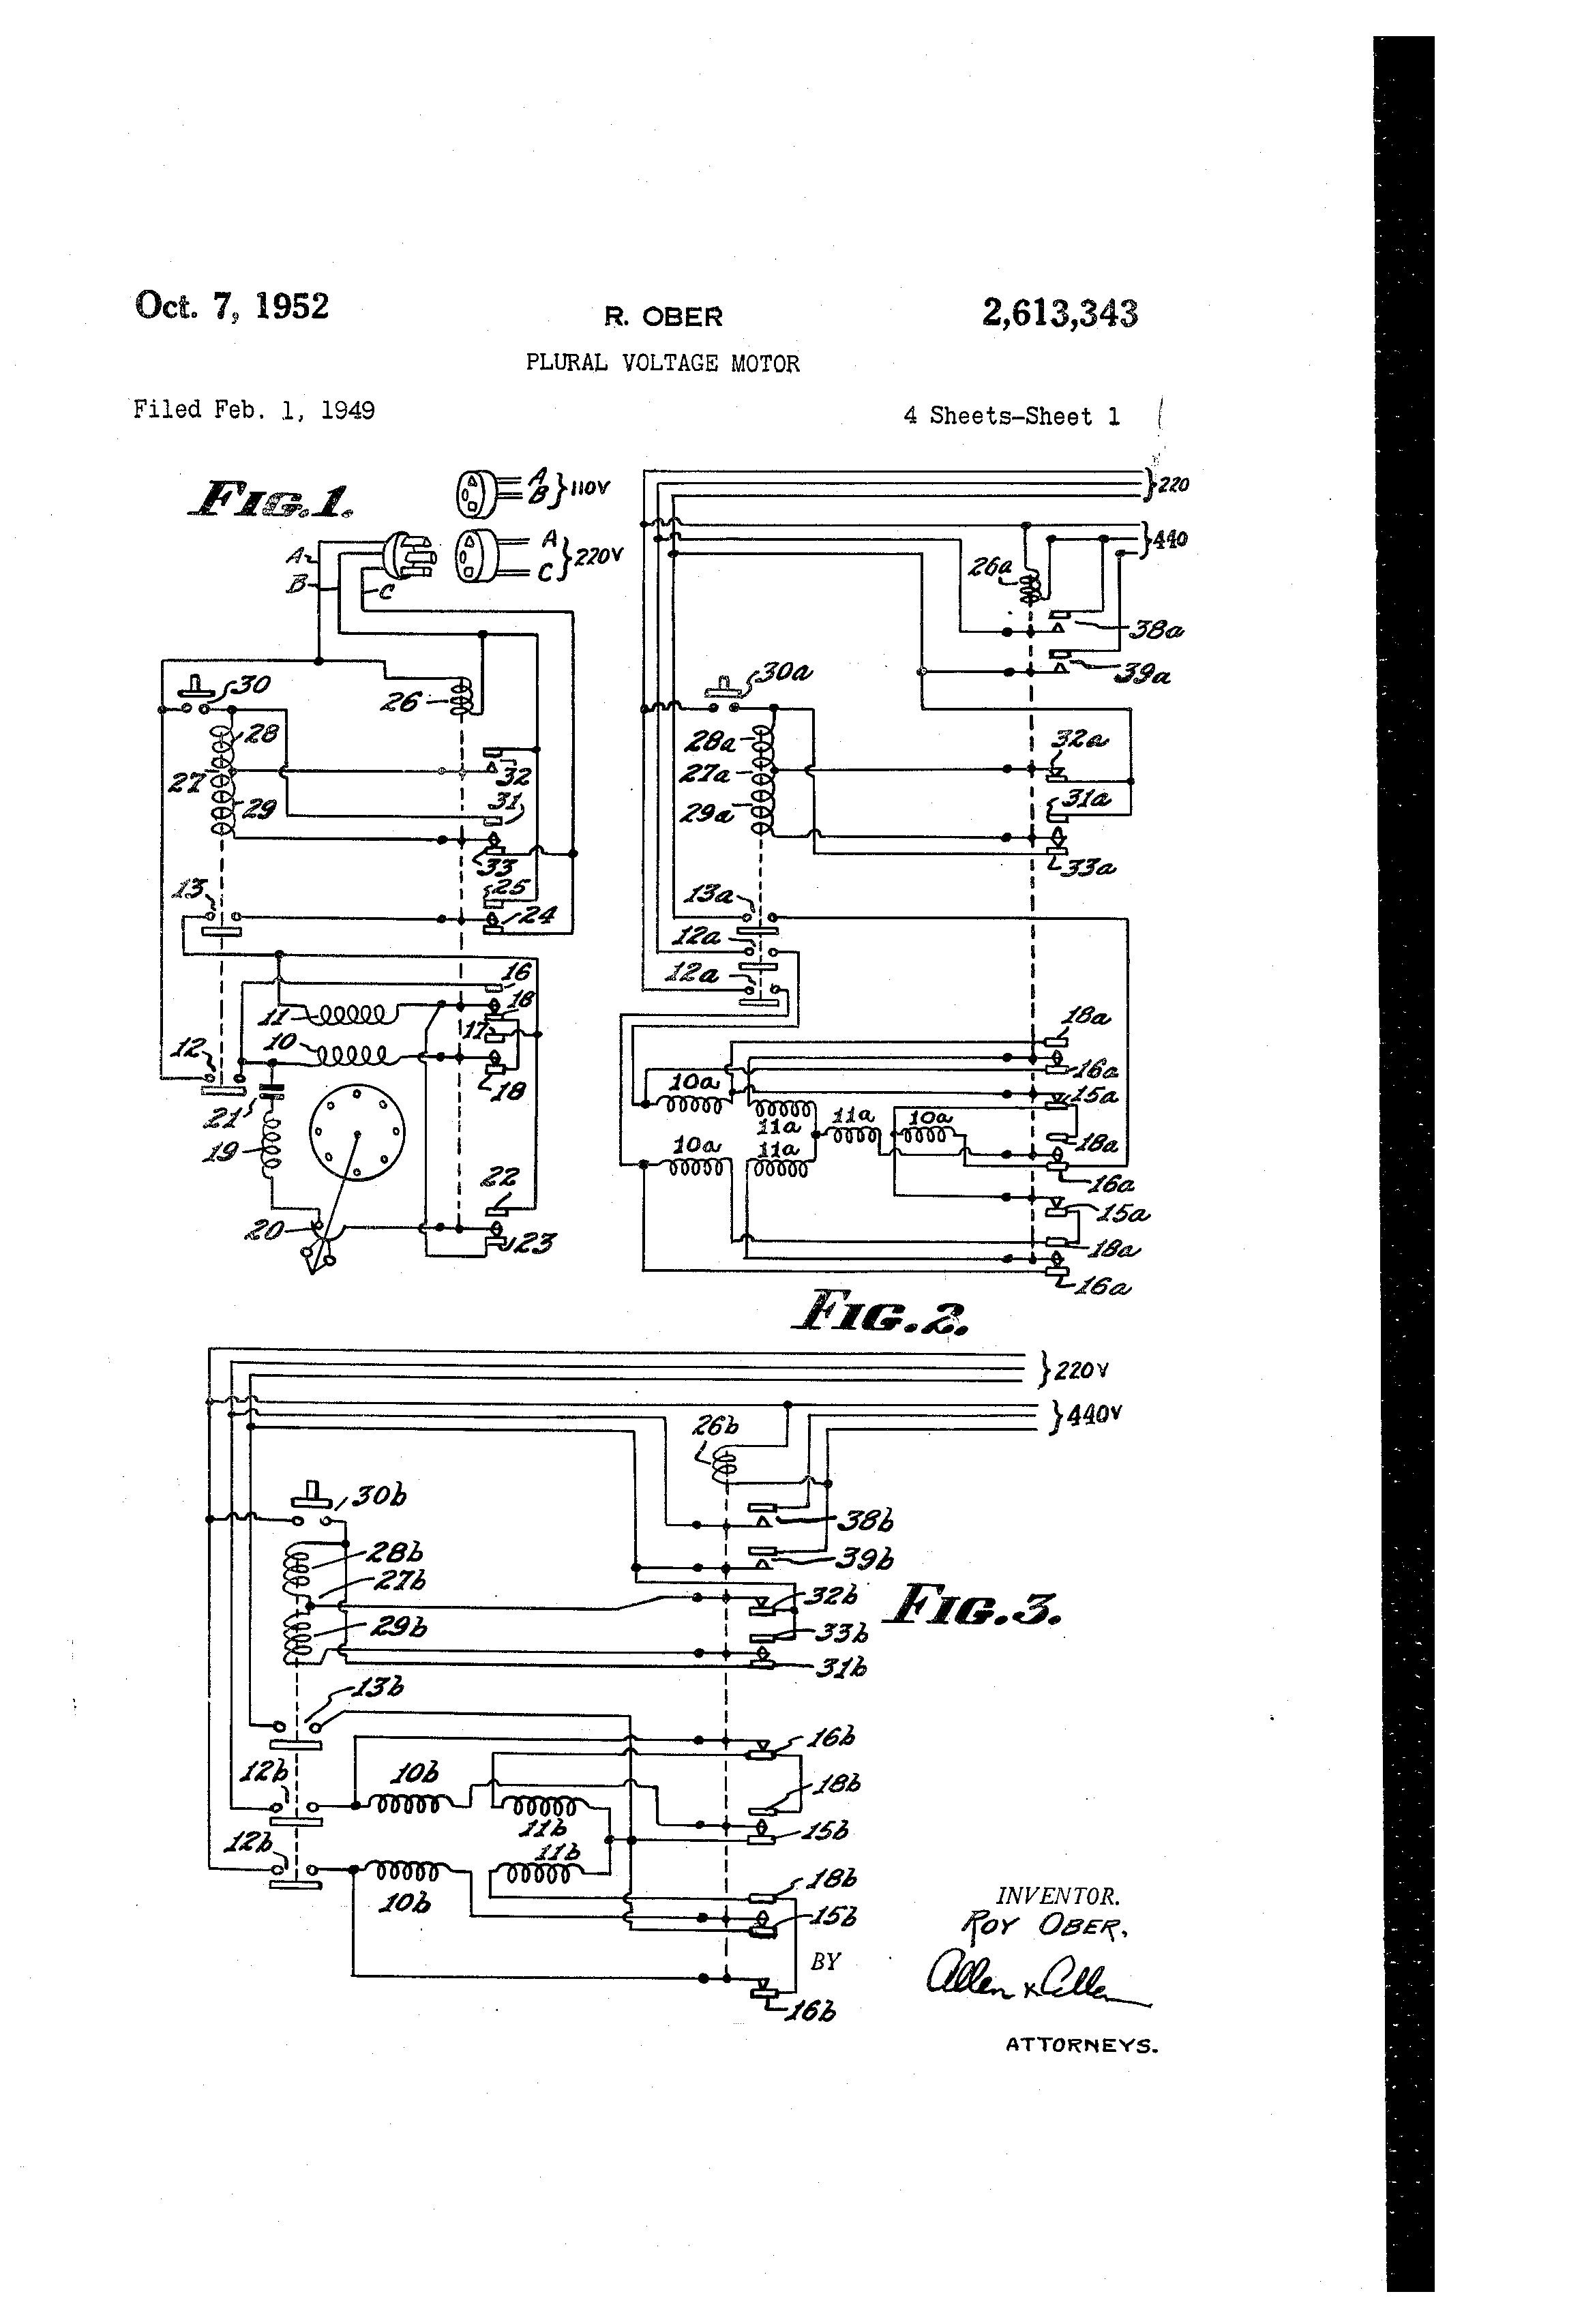 US2613343 0 patent us2613343 plural voltage motor google patents robbins and myers fan motor wiring diagram at crackthecode.co